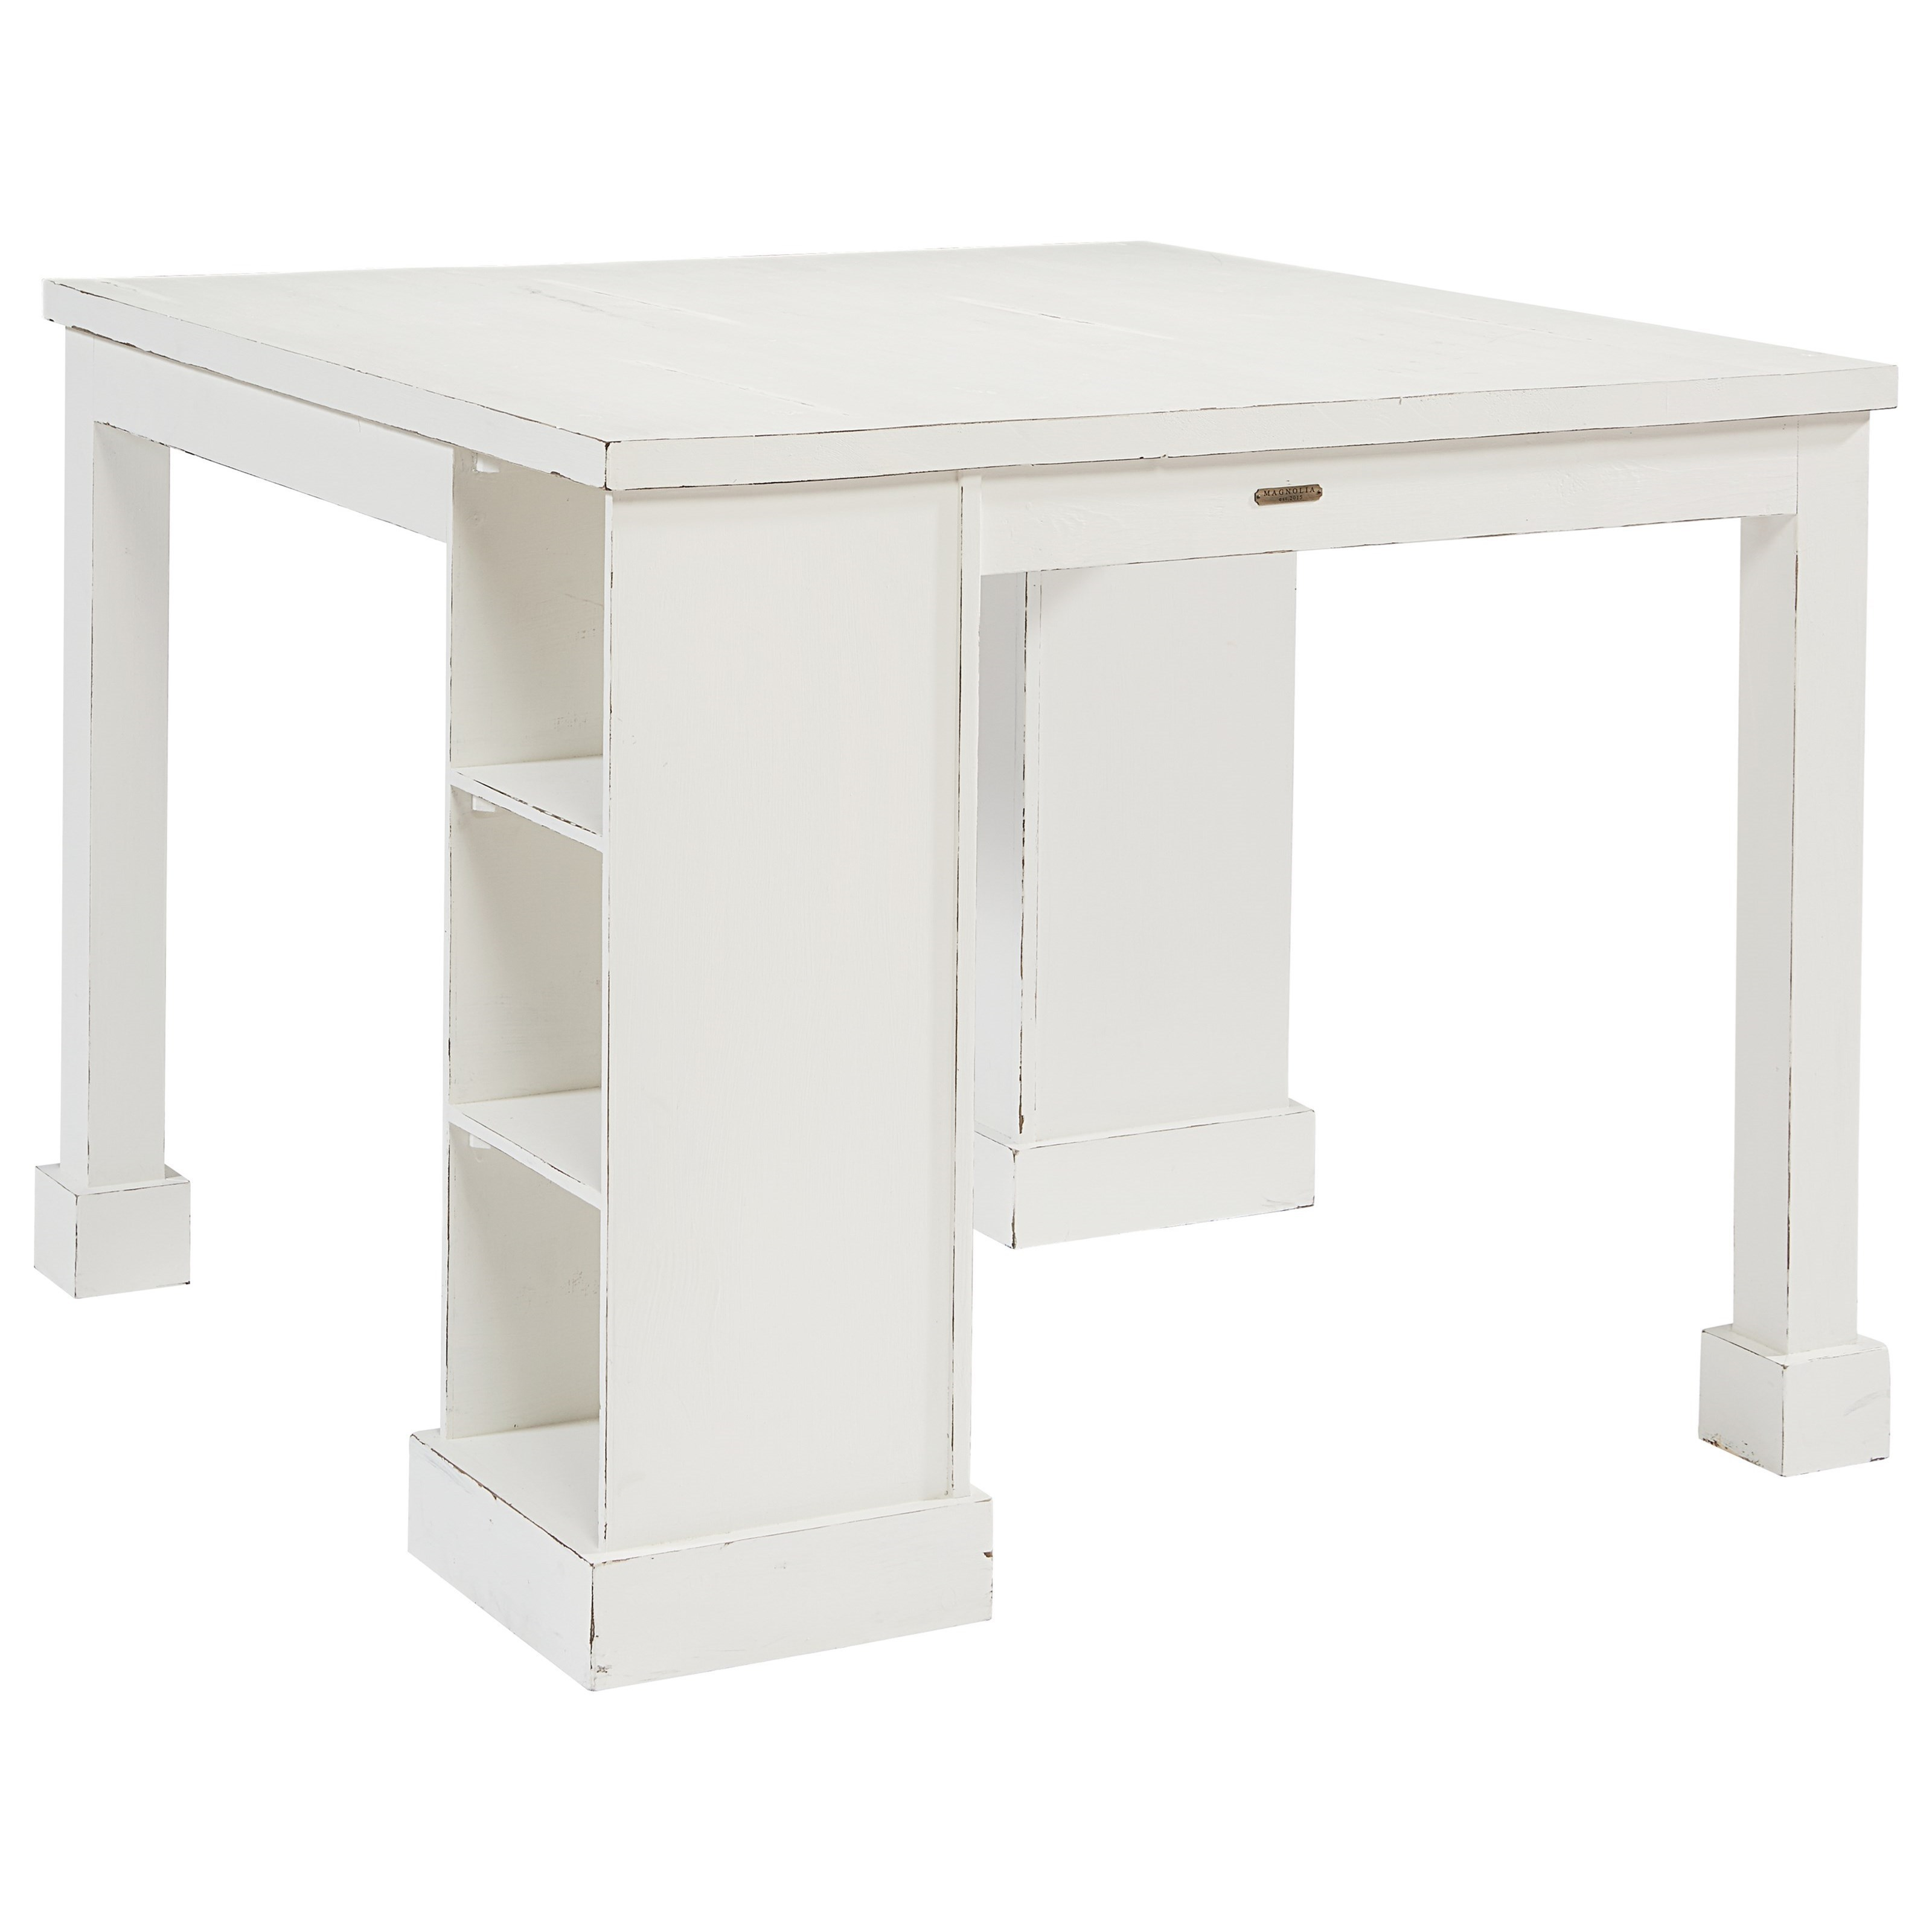 Magnolia Home By Joanna Gaines Farmhouse Craft Table With Corner Storage  And Cubby Shelves